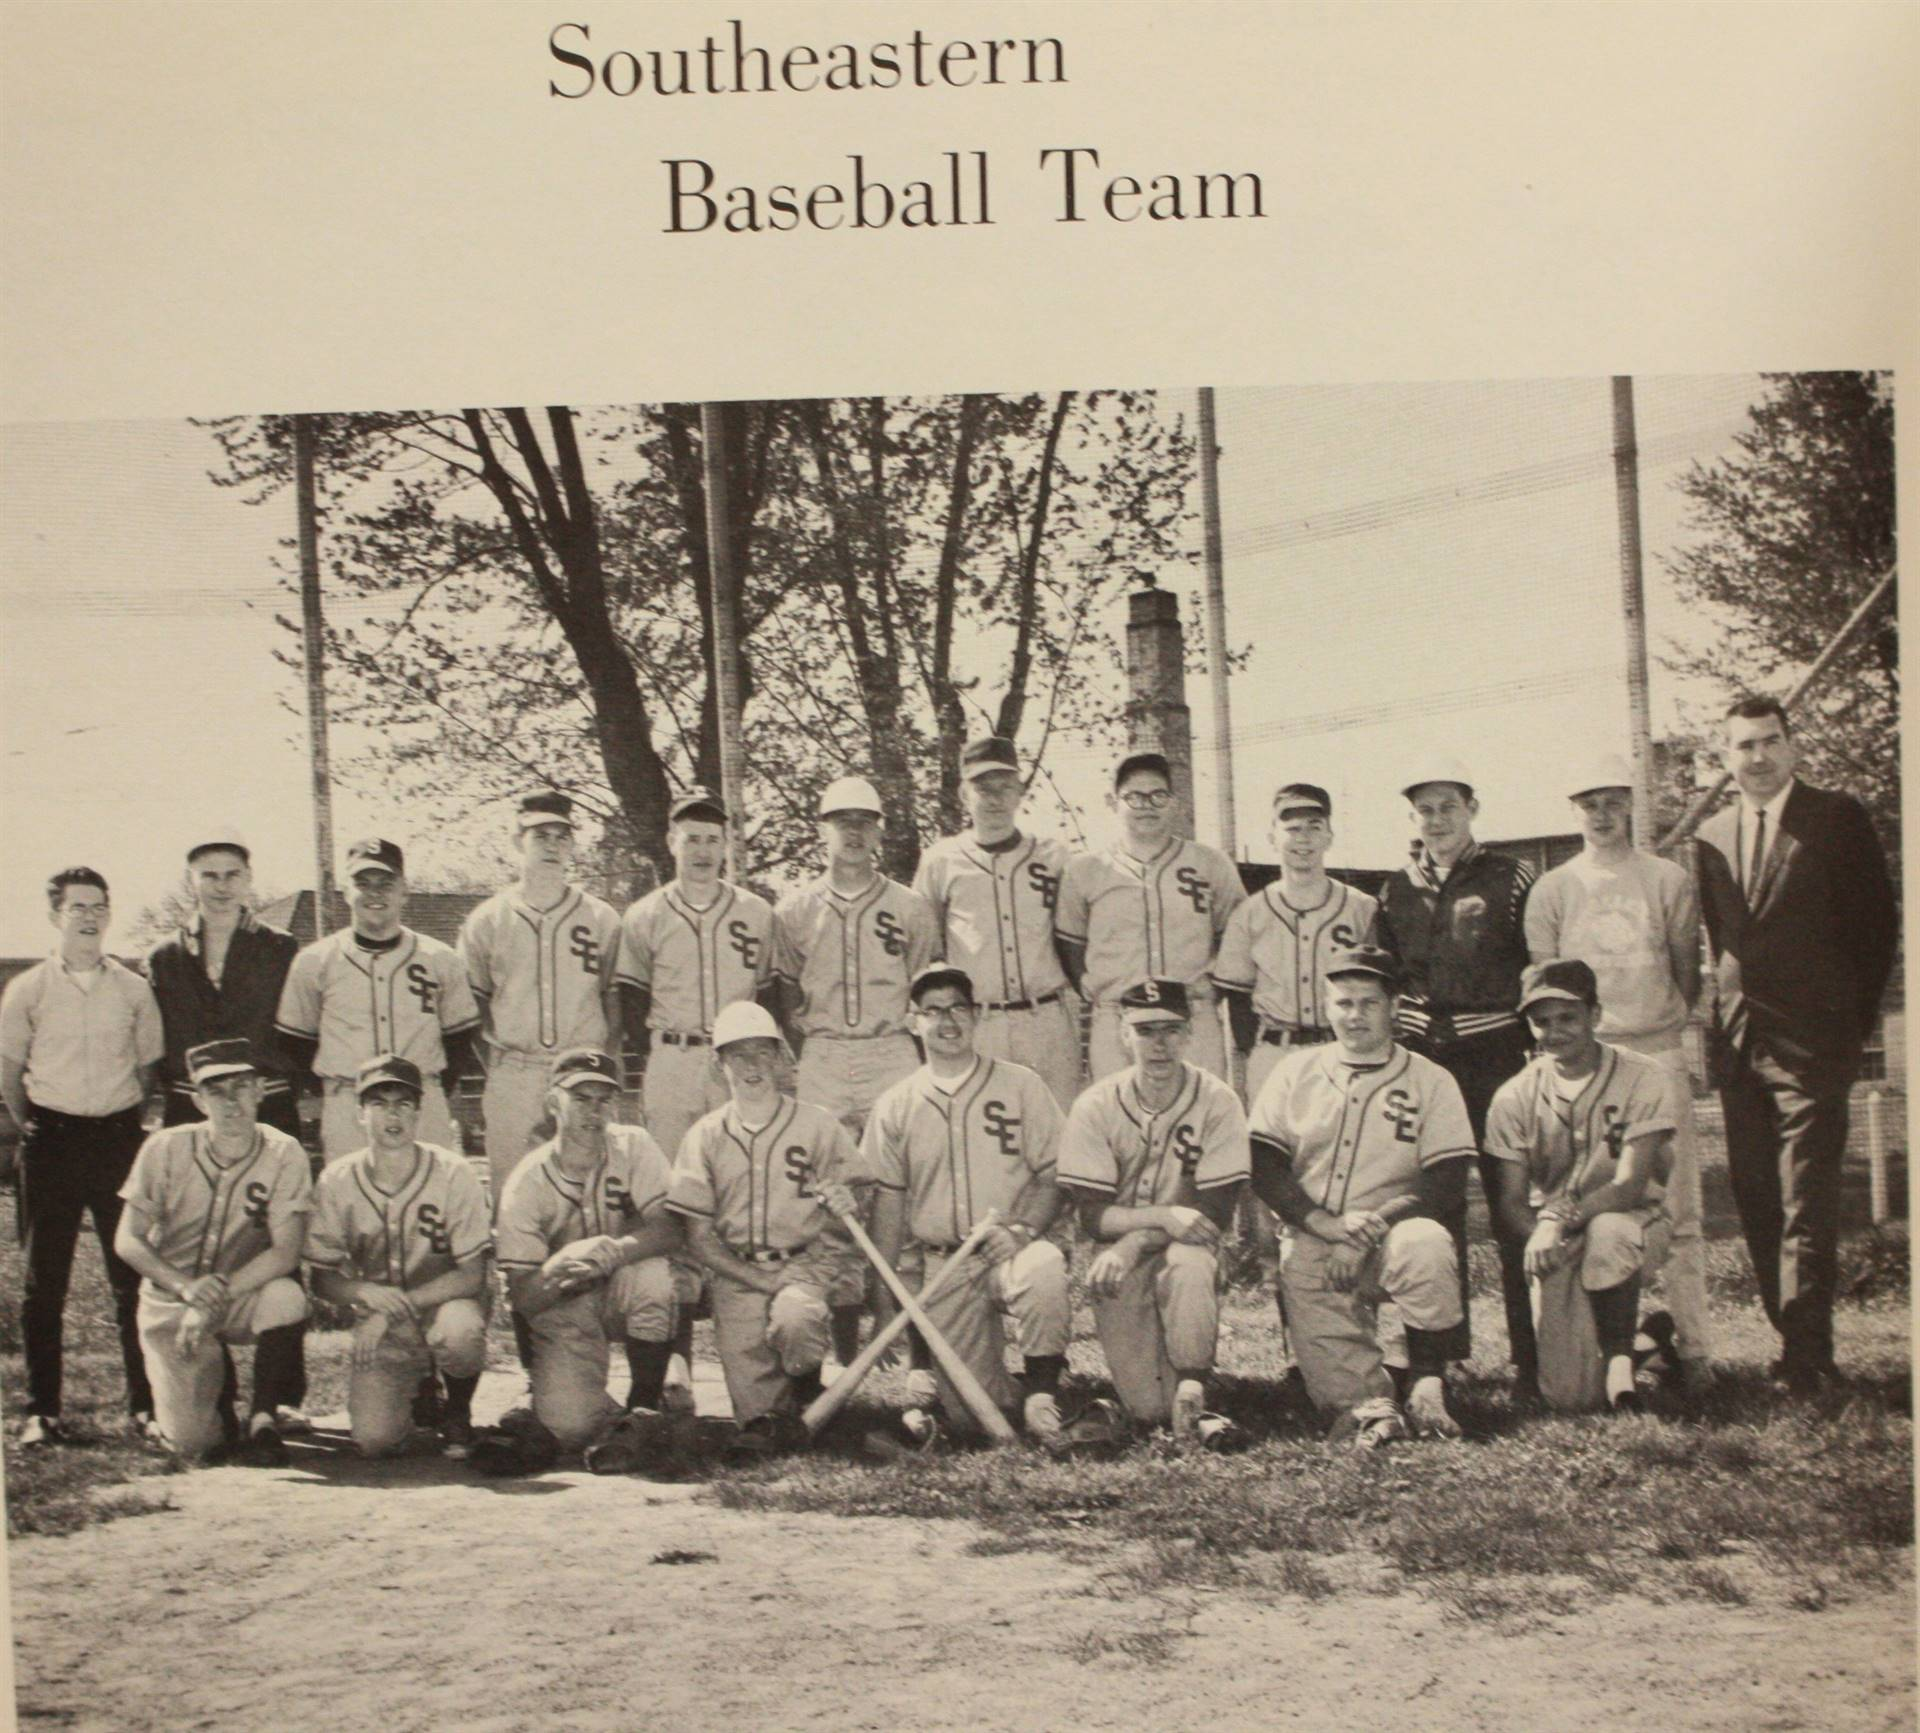 1966 Southeastern Baseball Team